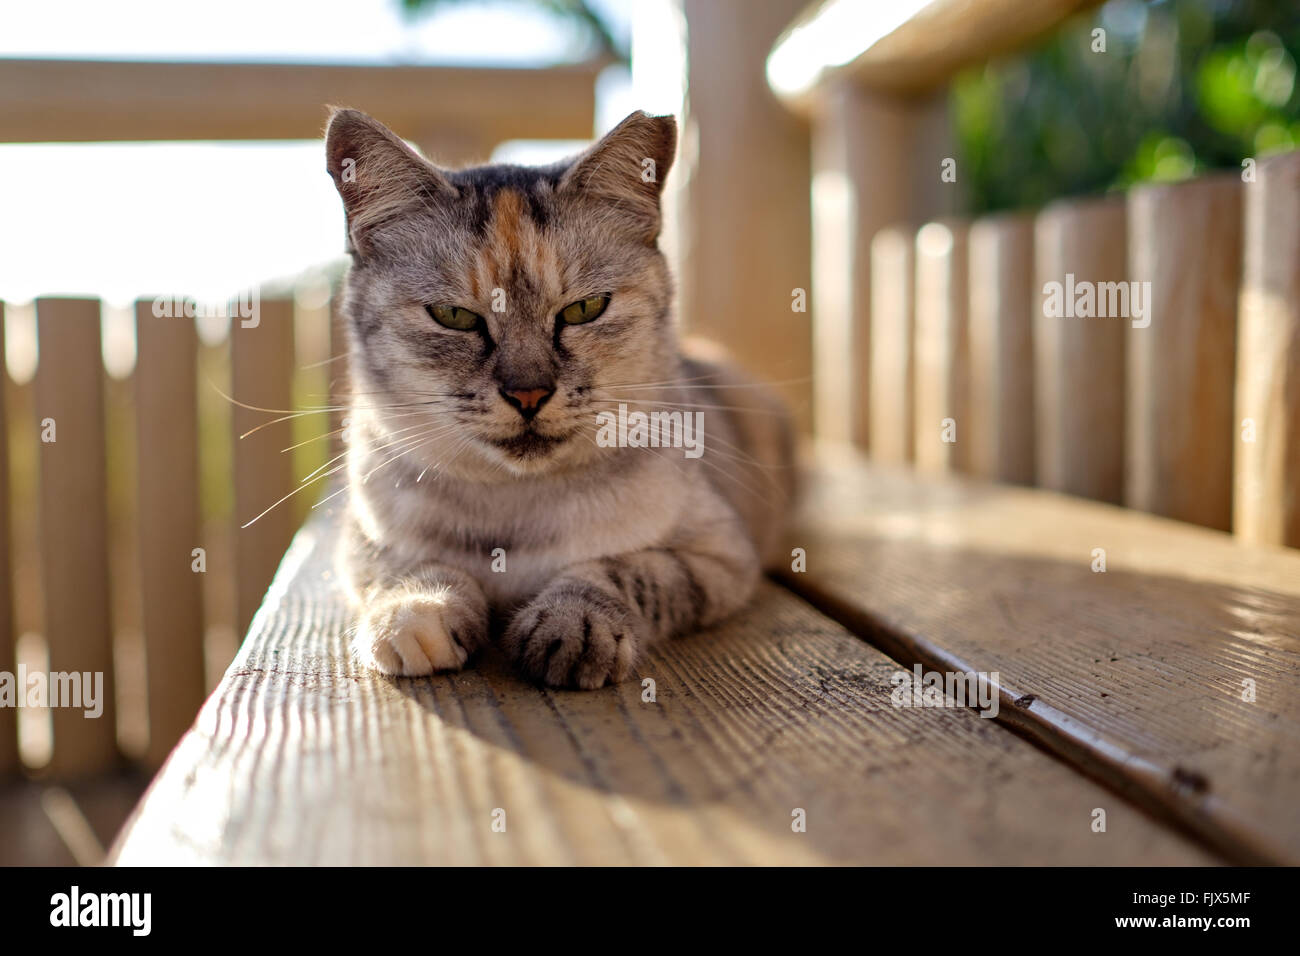 Portrait Of Cat Sitting On Wooden Seat In Gazebo - Stock Image